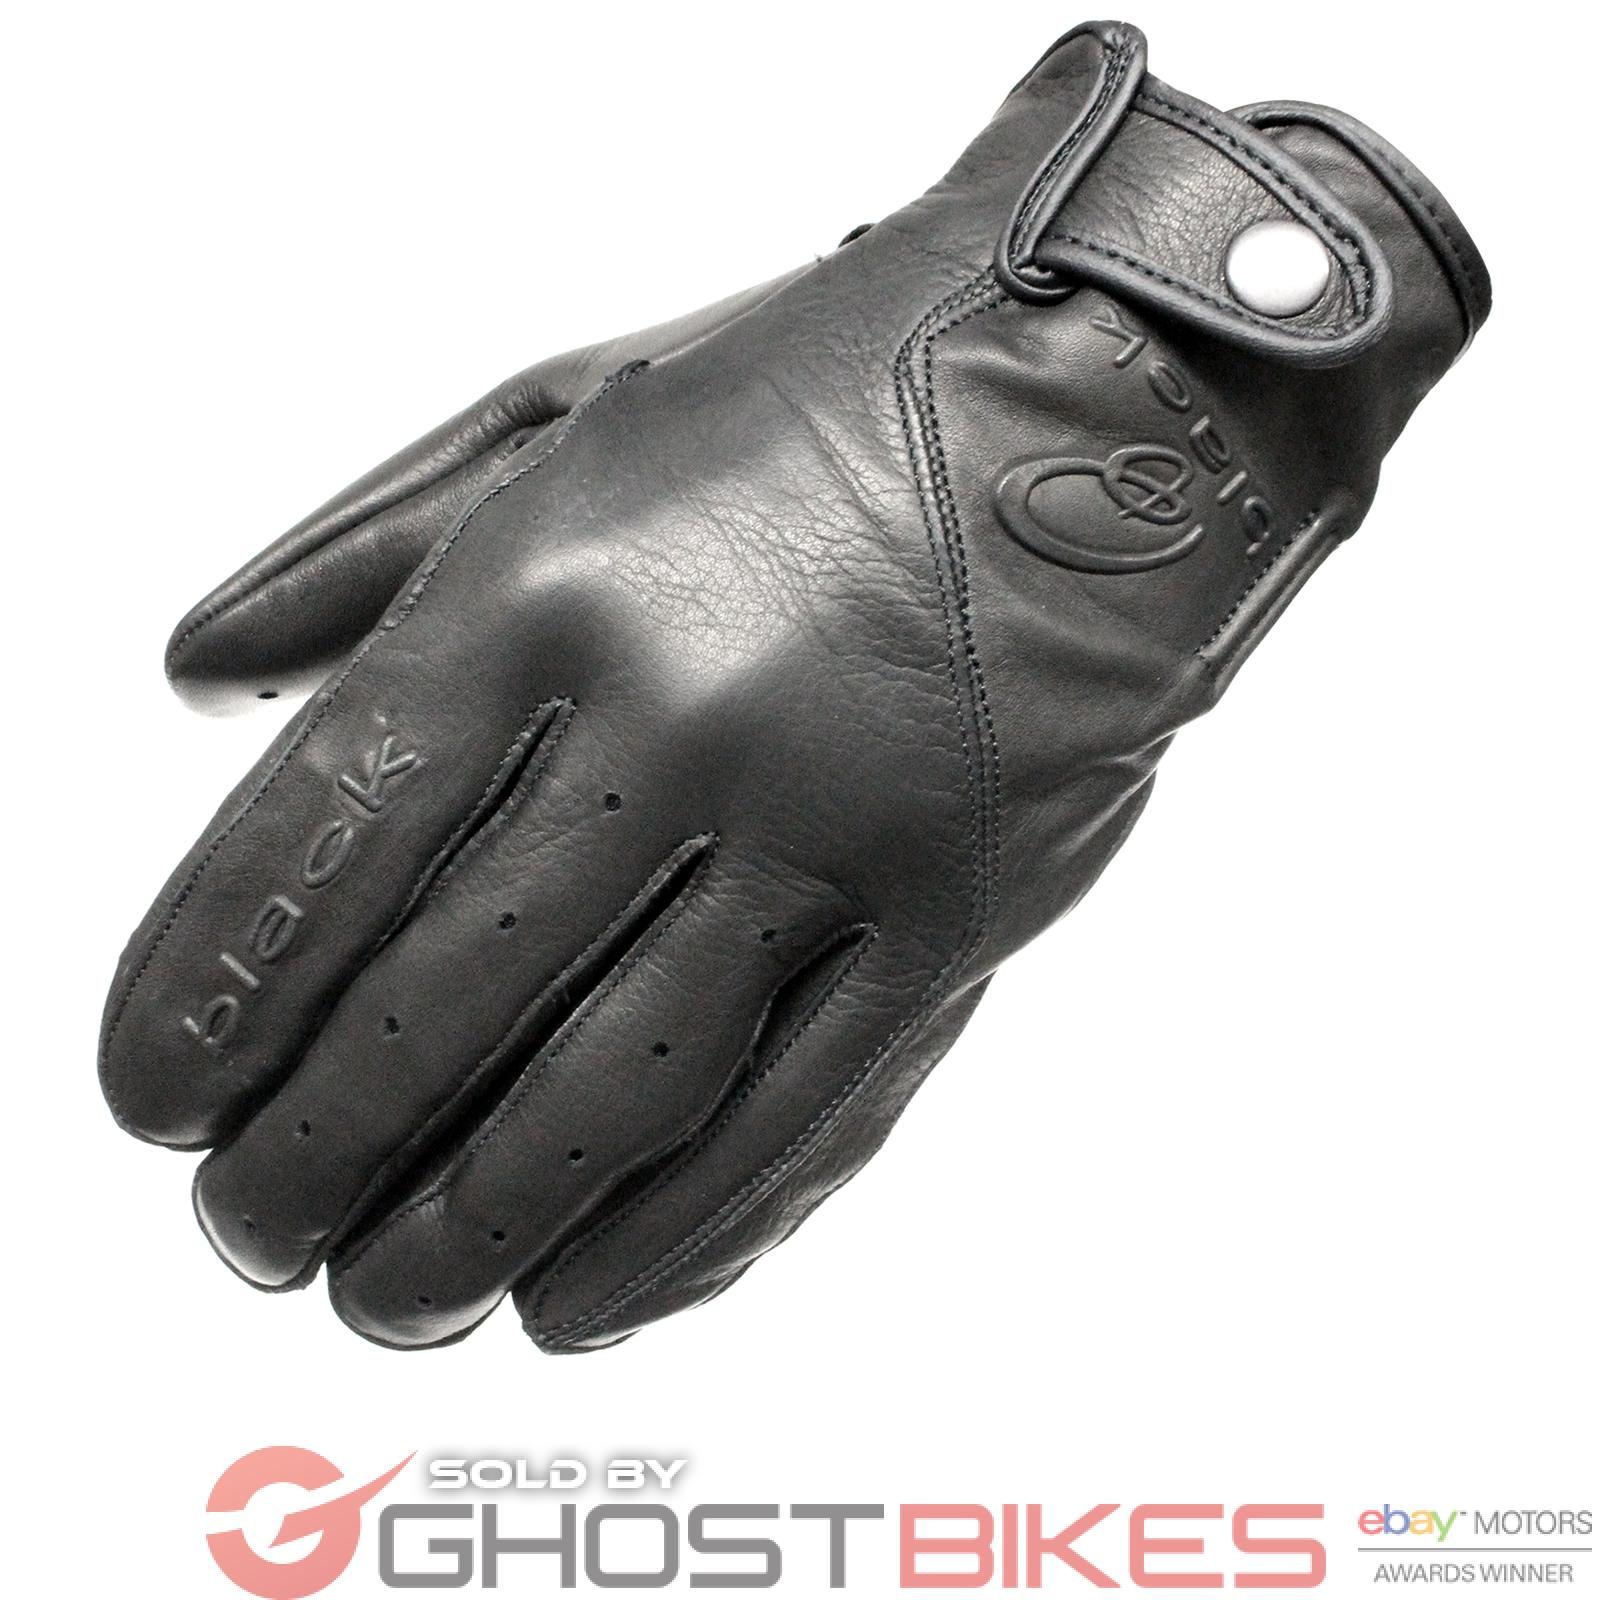 Leather driving gloves on ebay - Image Is Loading Black Static Leather Classic Vintage Fashion Motorcycle Bike